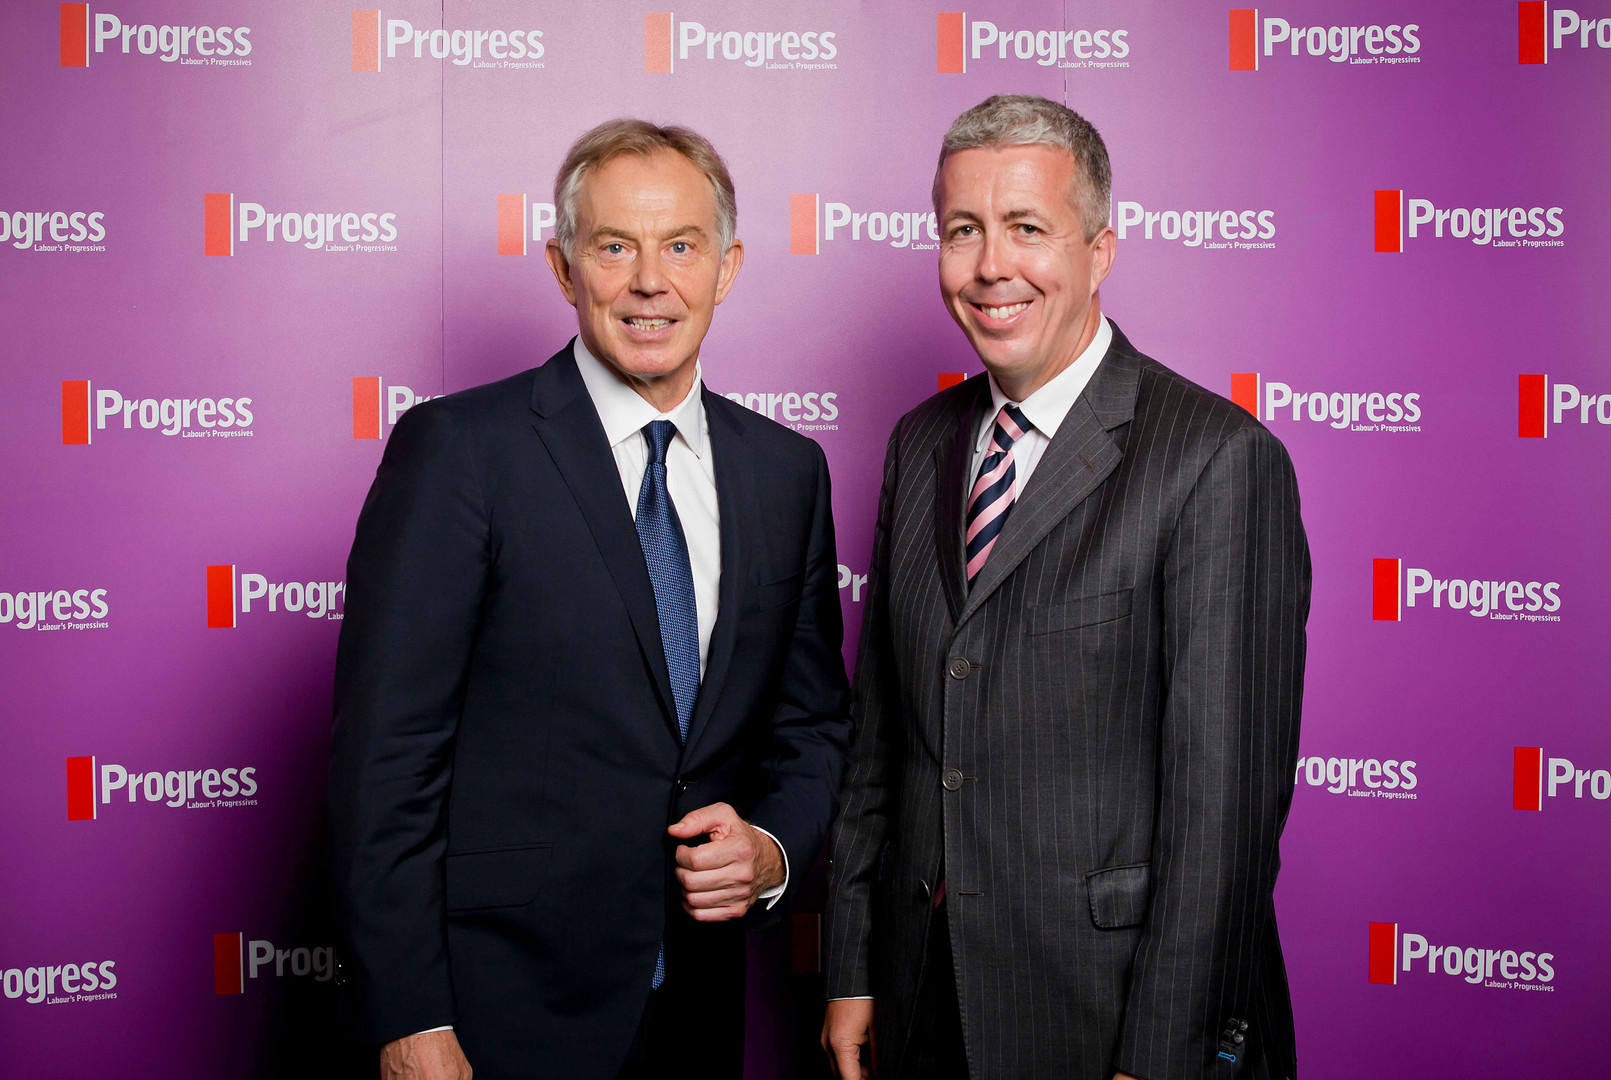 Kevin Craig and Tony Blair